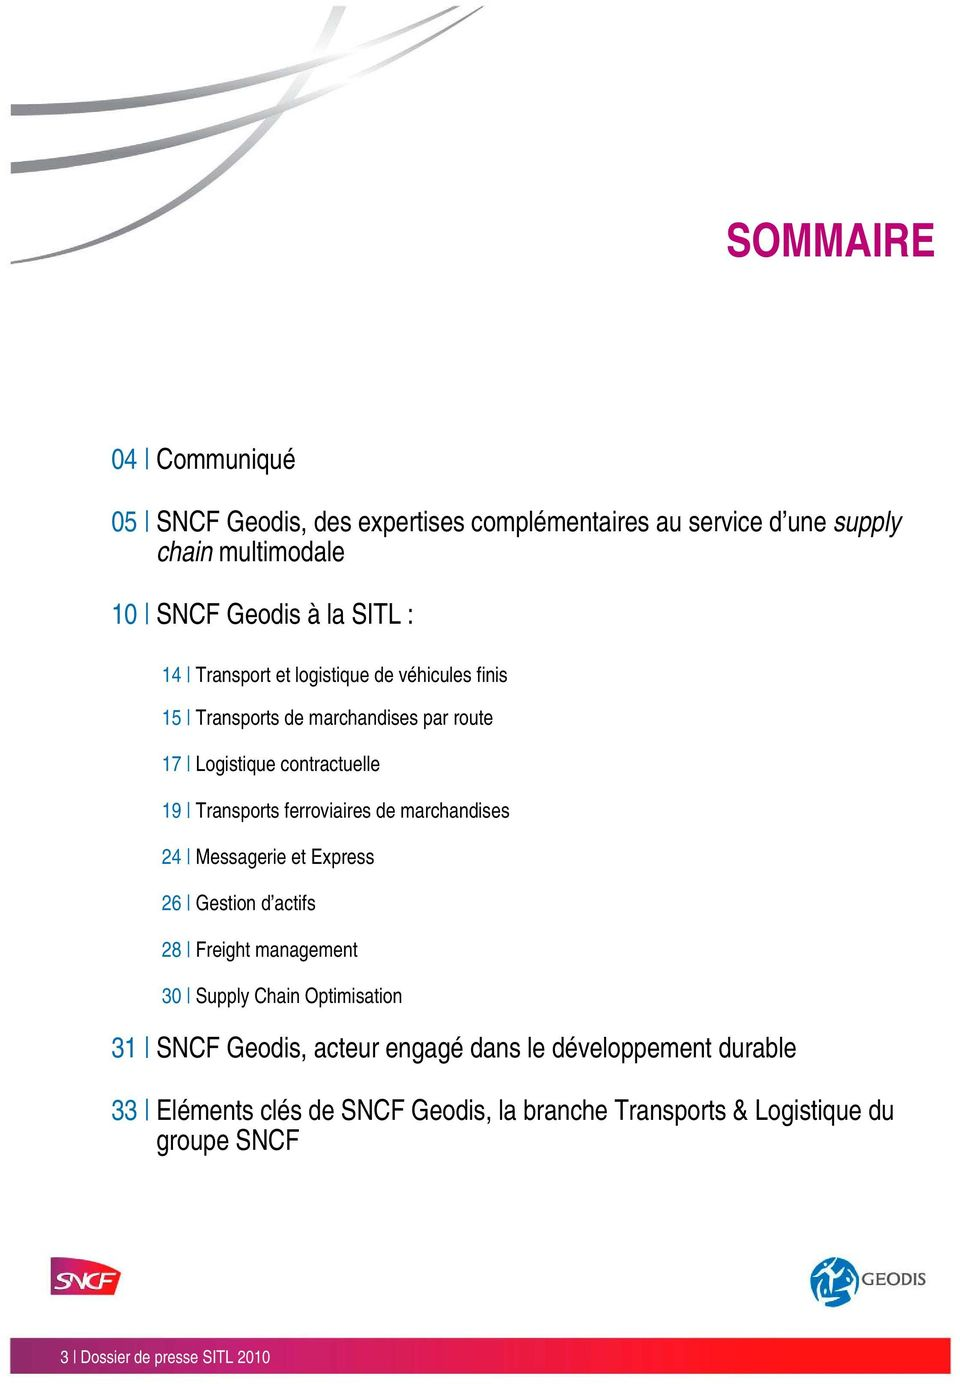 de marchandises 24 Messagerie et Express 26 Gestion d actifs 28 Freight management 30 Supply Chain Optimisation 31 SNCF Geodis, acteur